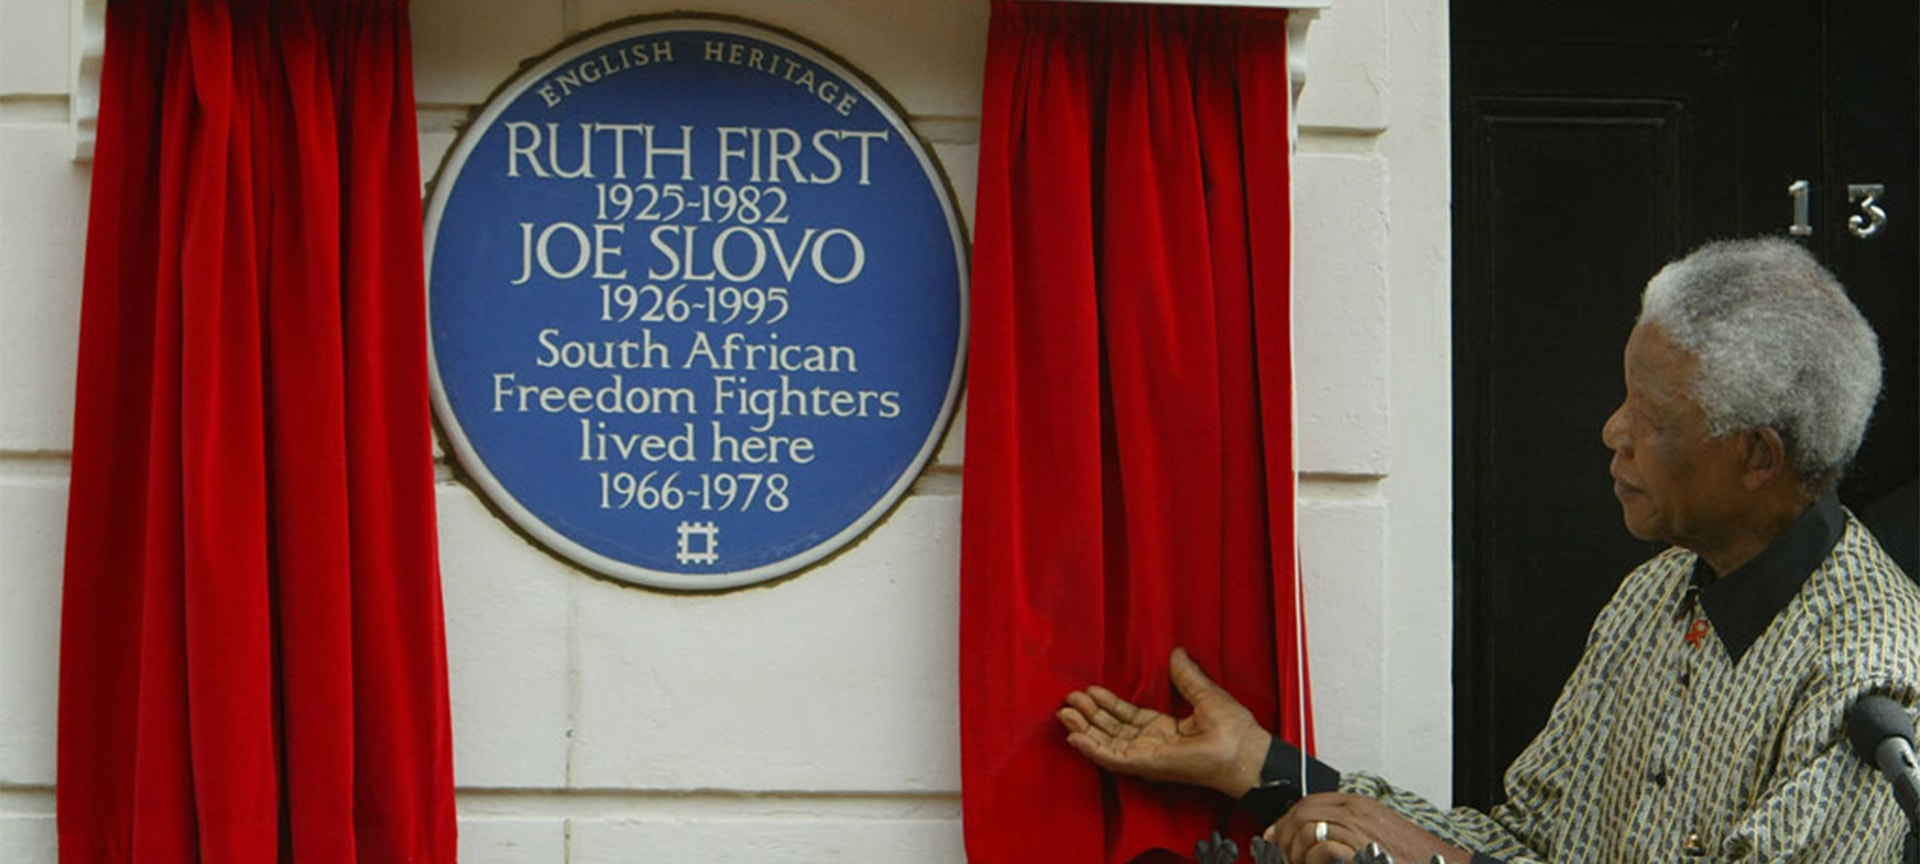 Nelson Mandela received rapturous applause as he unveiled a blue plaque at the former home of two eminent anti-apartheid activists in London. Hundreds of people gathered outside 13 Lyme Street, Camden, north London, as the former South African President paid a personal tribute to Ruth First and her husband, Joe Slovo. Mr Mandela said the couple, who lived there between 1966 and 1978, were